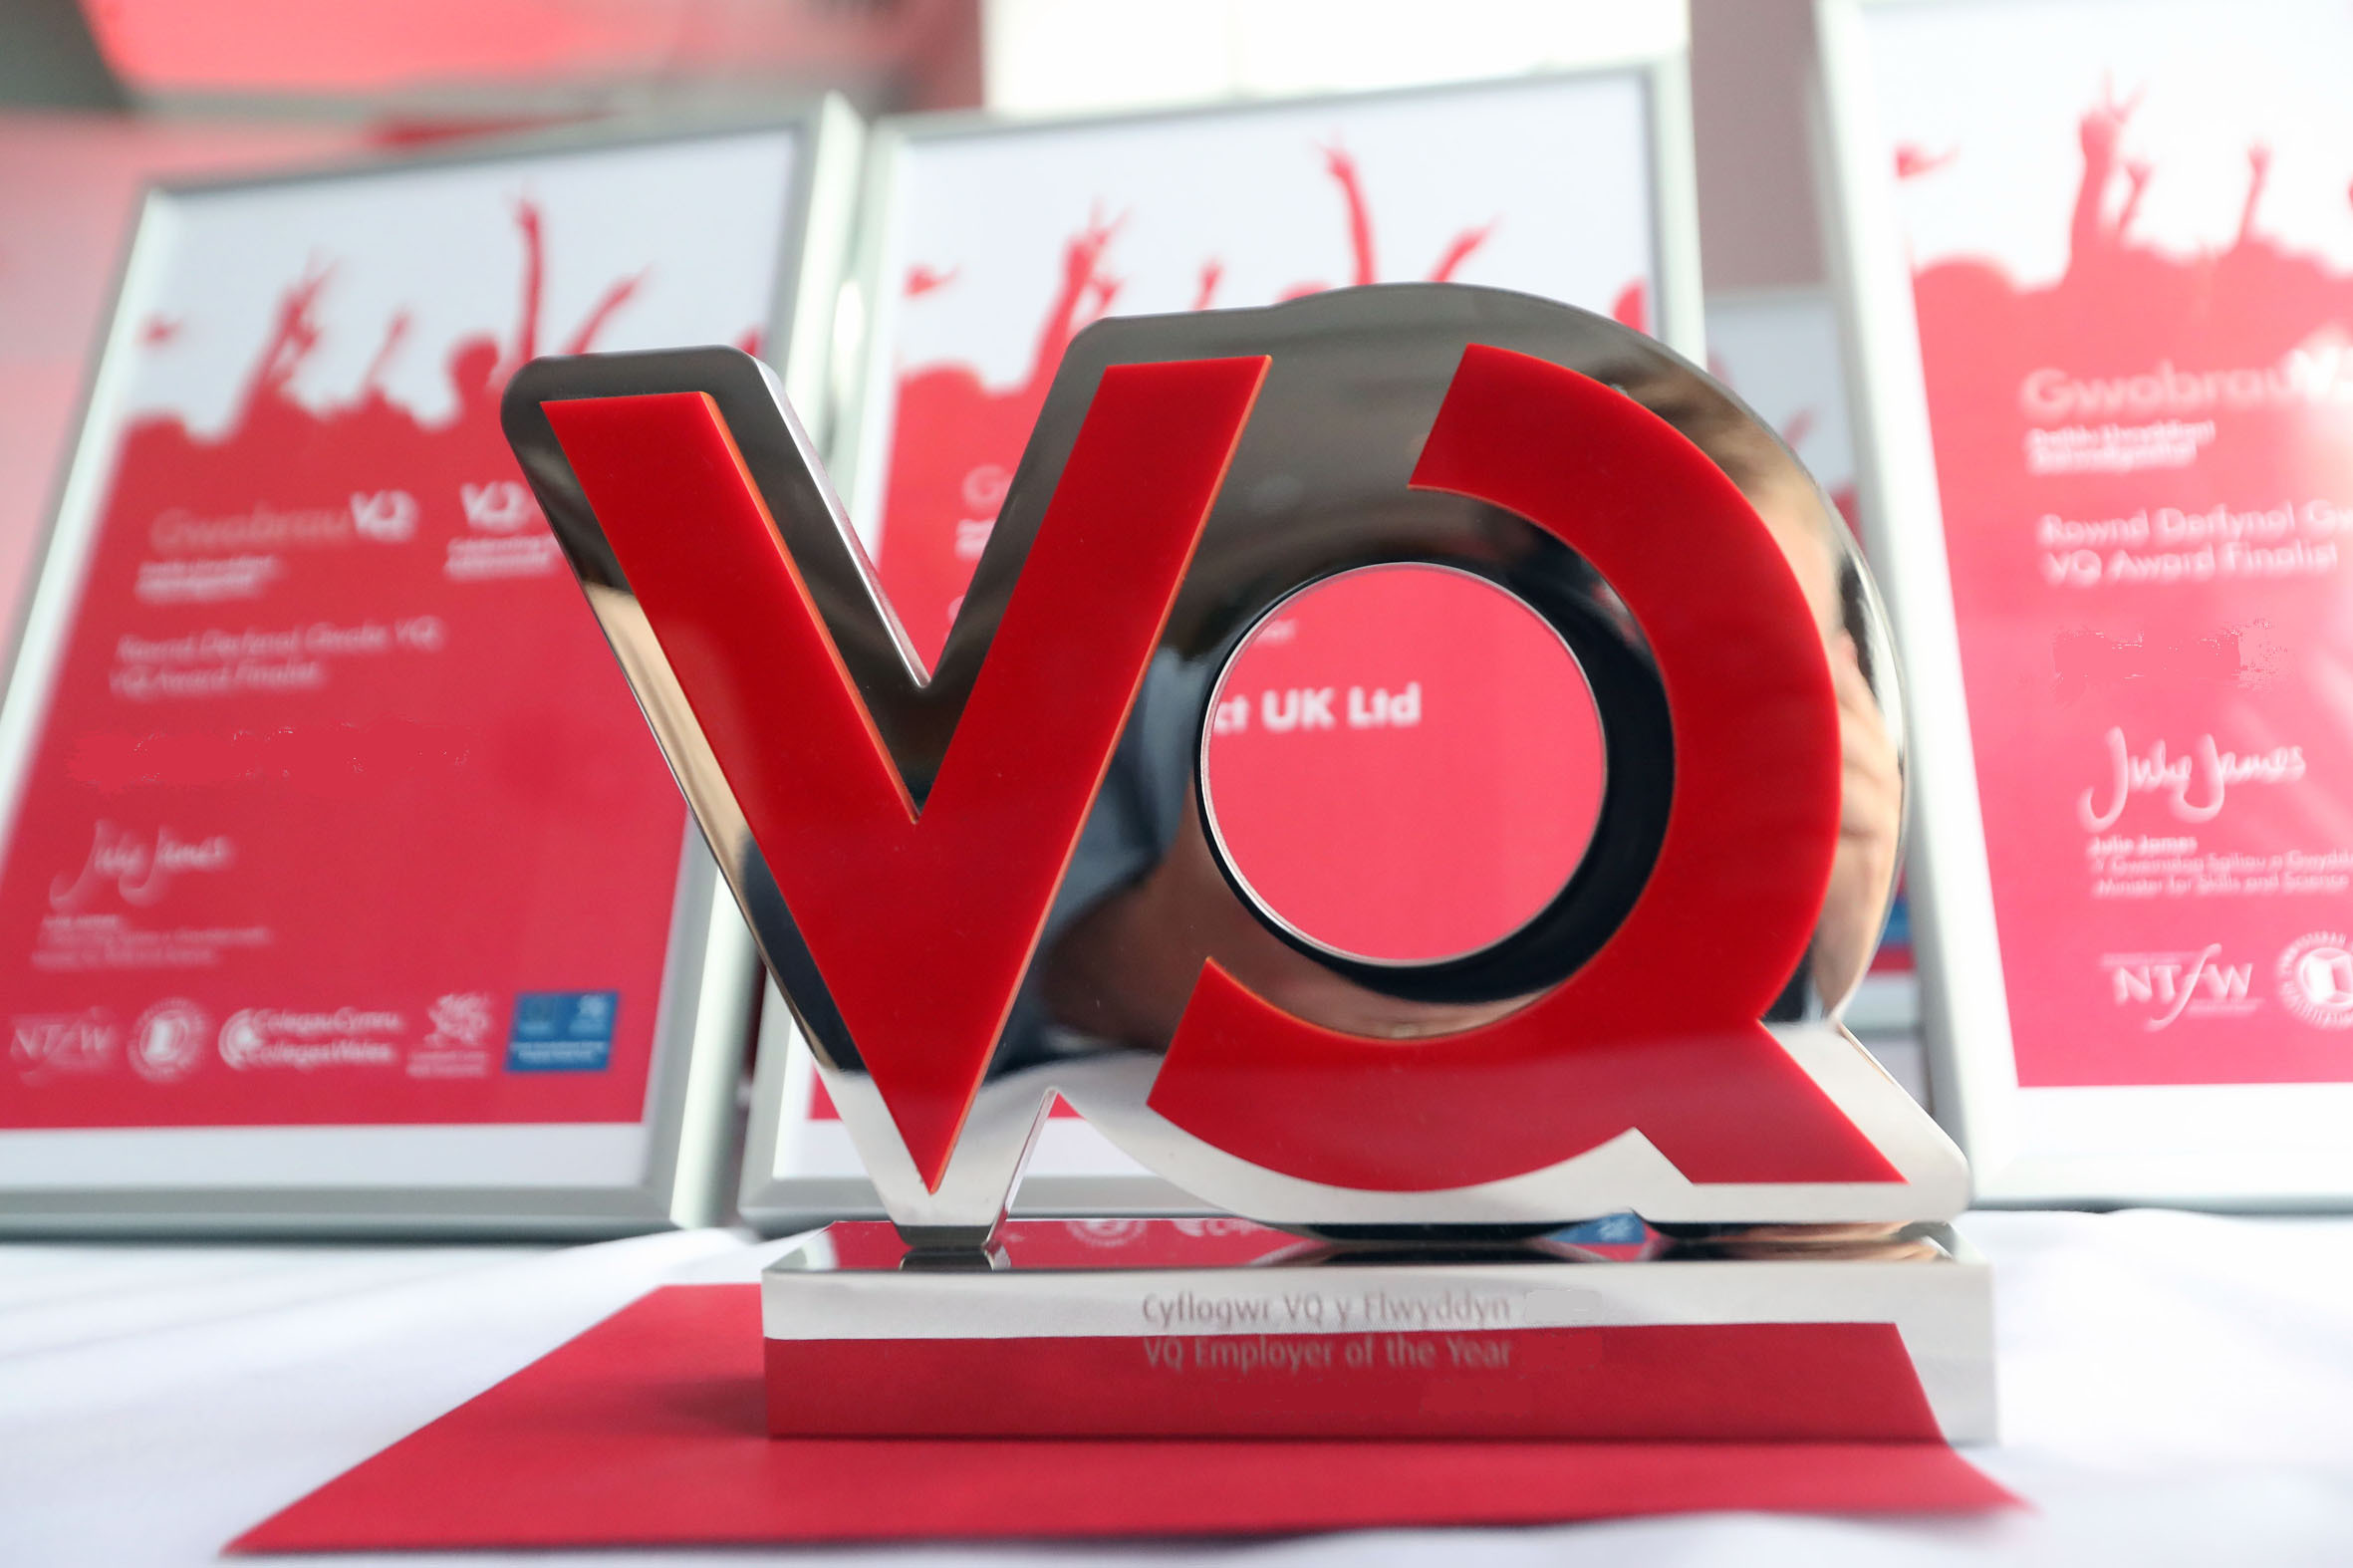 The coveted VQ Award, which is awaiting this year's winners